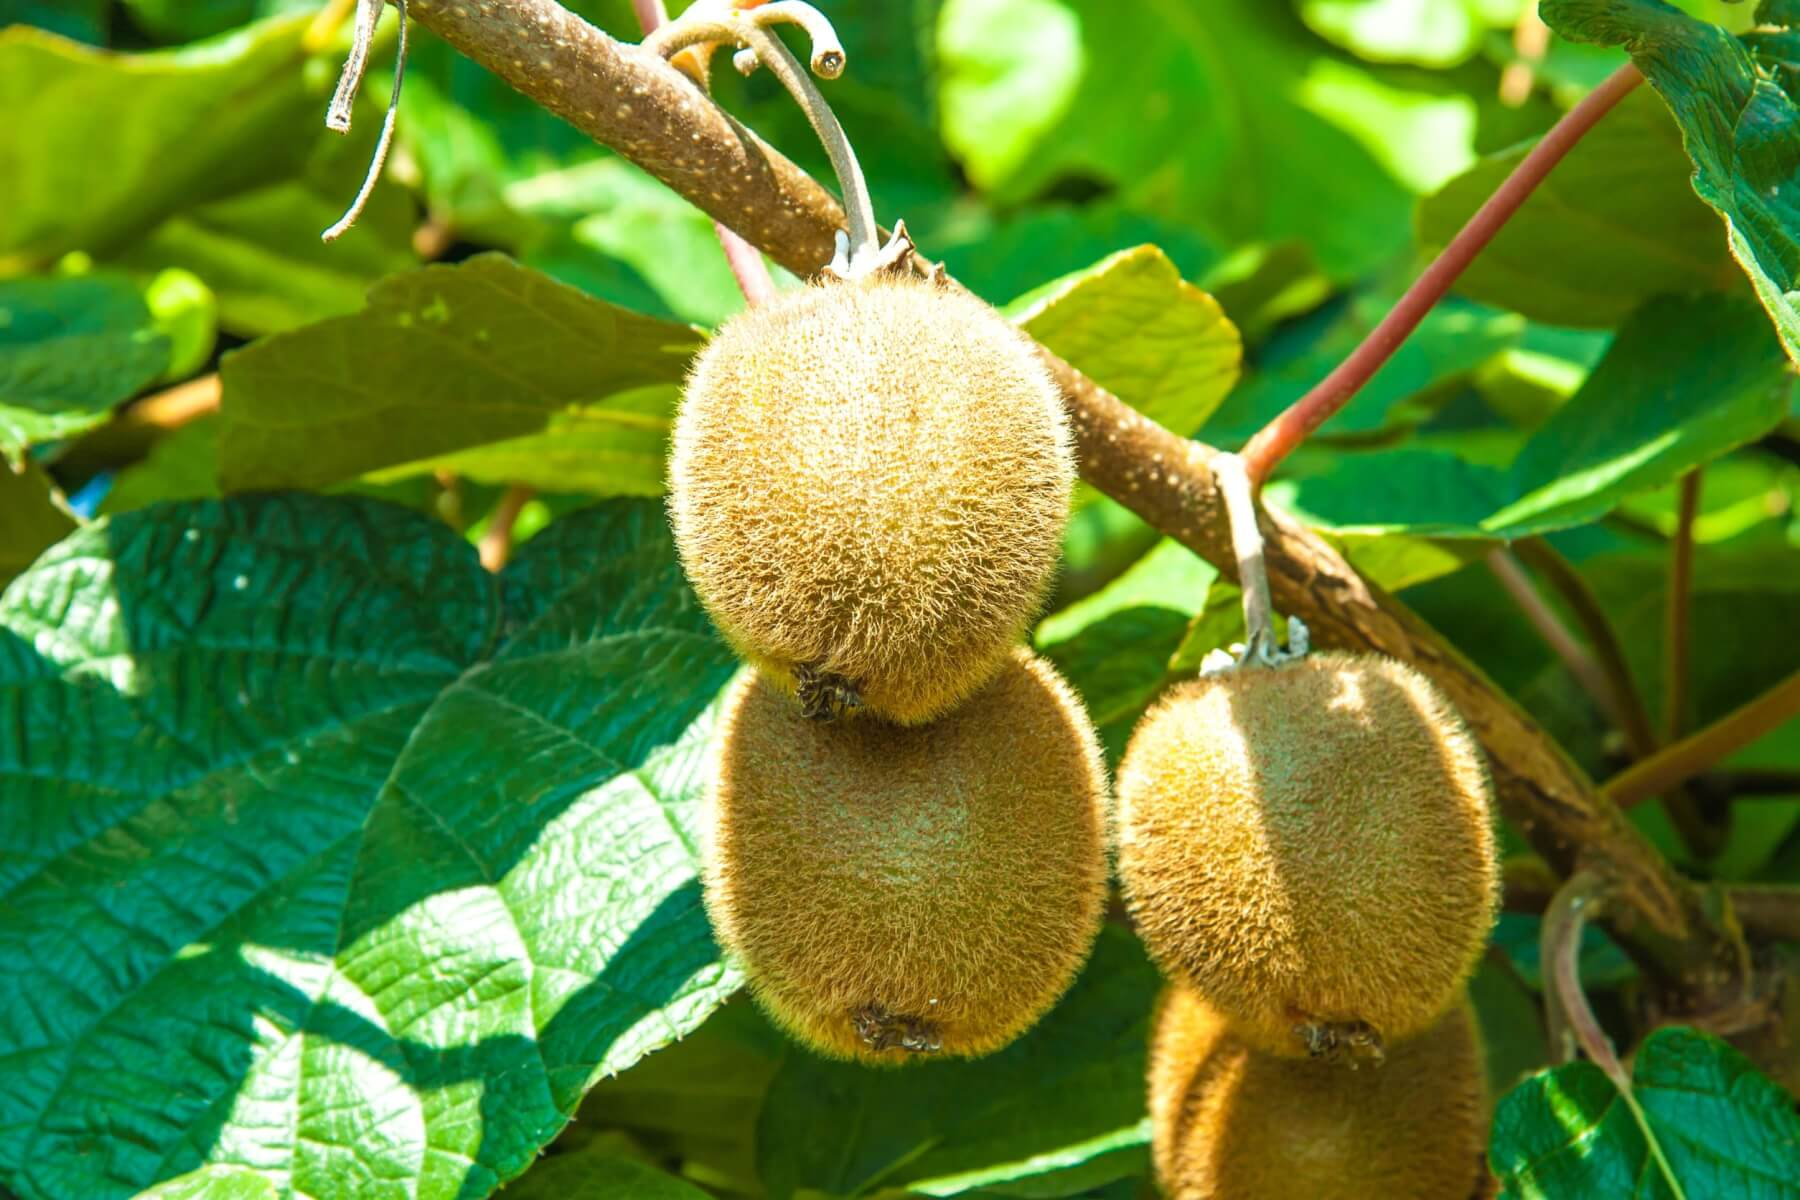 Kiwi Fruit image